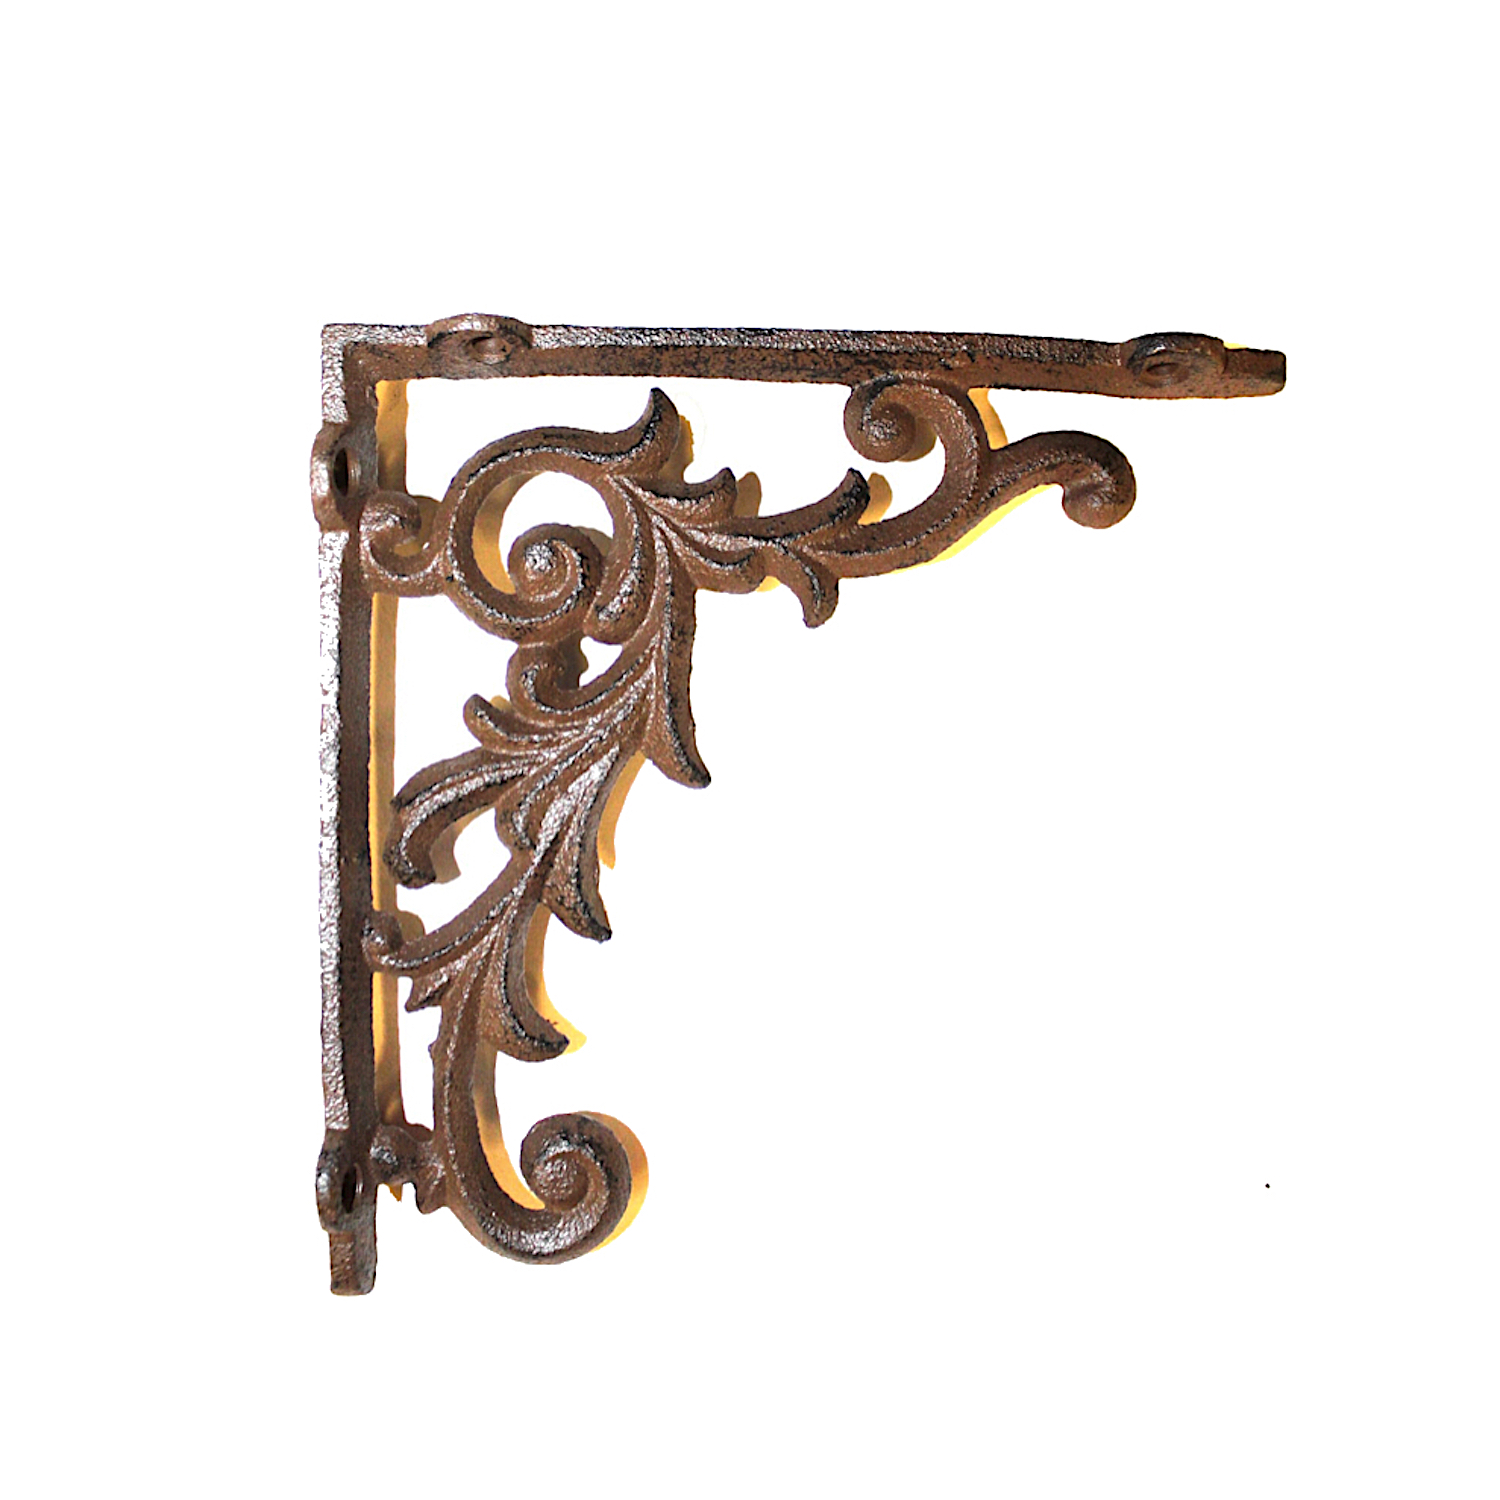 A PAIR OF ANTIQUE STYLE SMALL HAMMERED IRON BRACKETS CAST IRON SHELF BRACKET Architectural & Garden Antiques